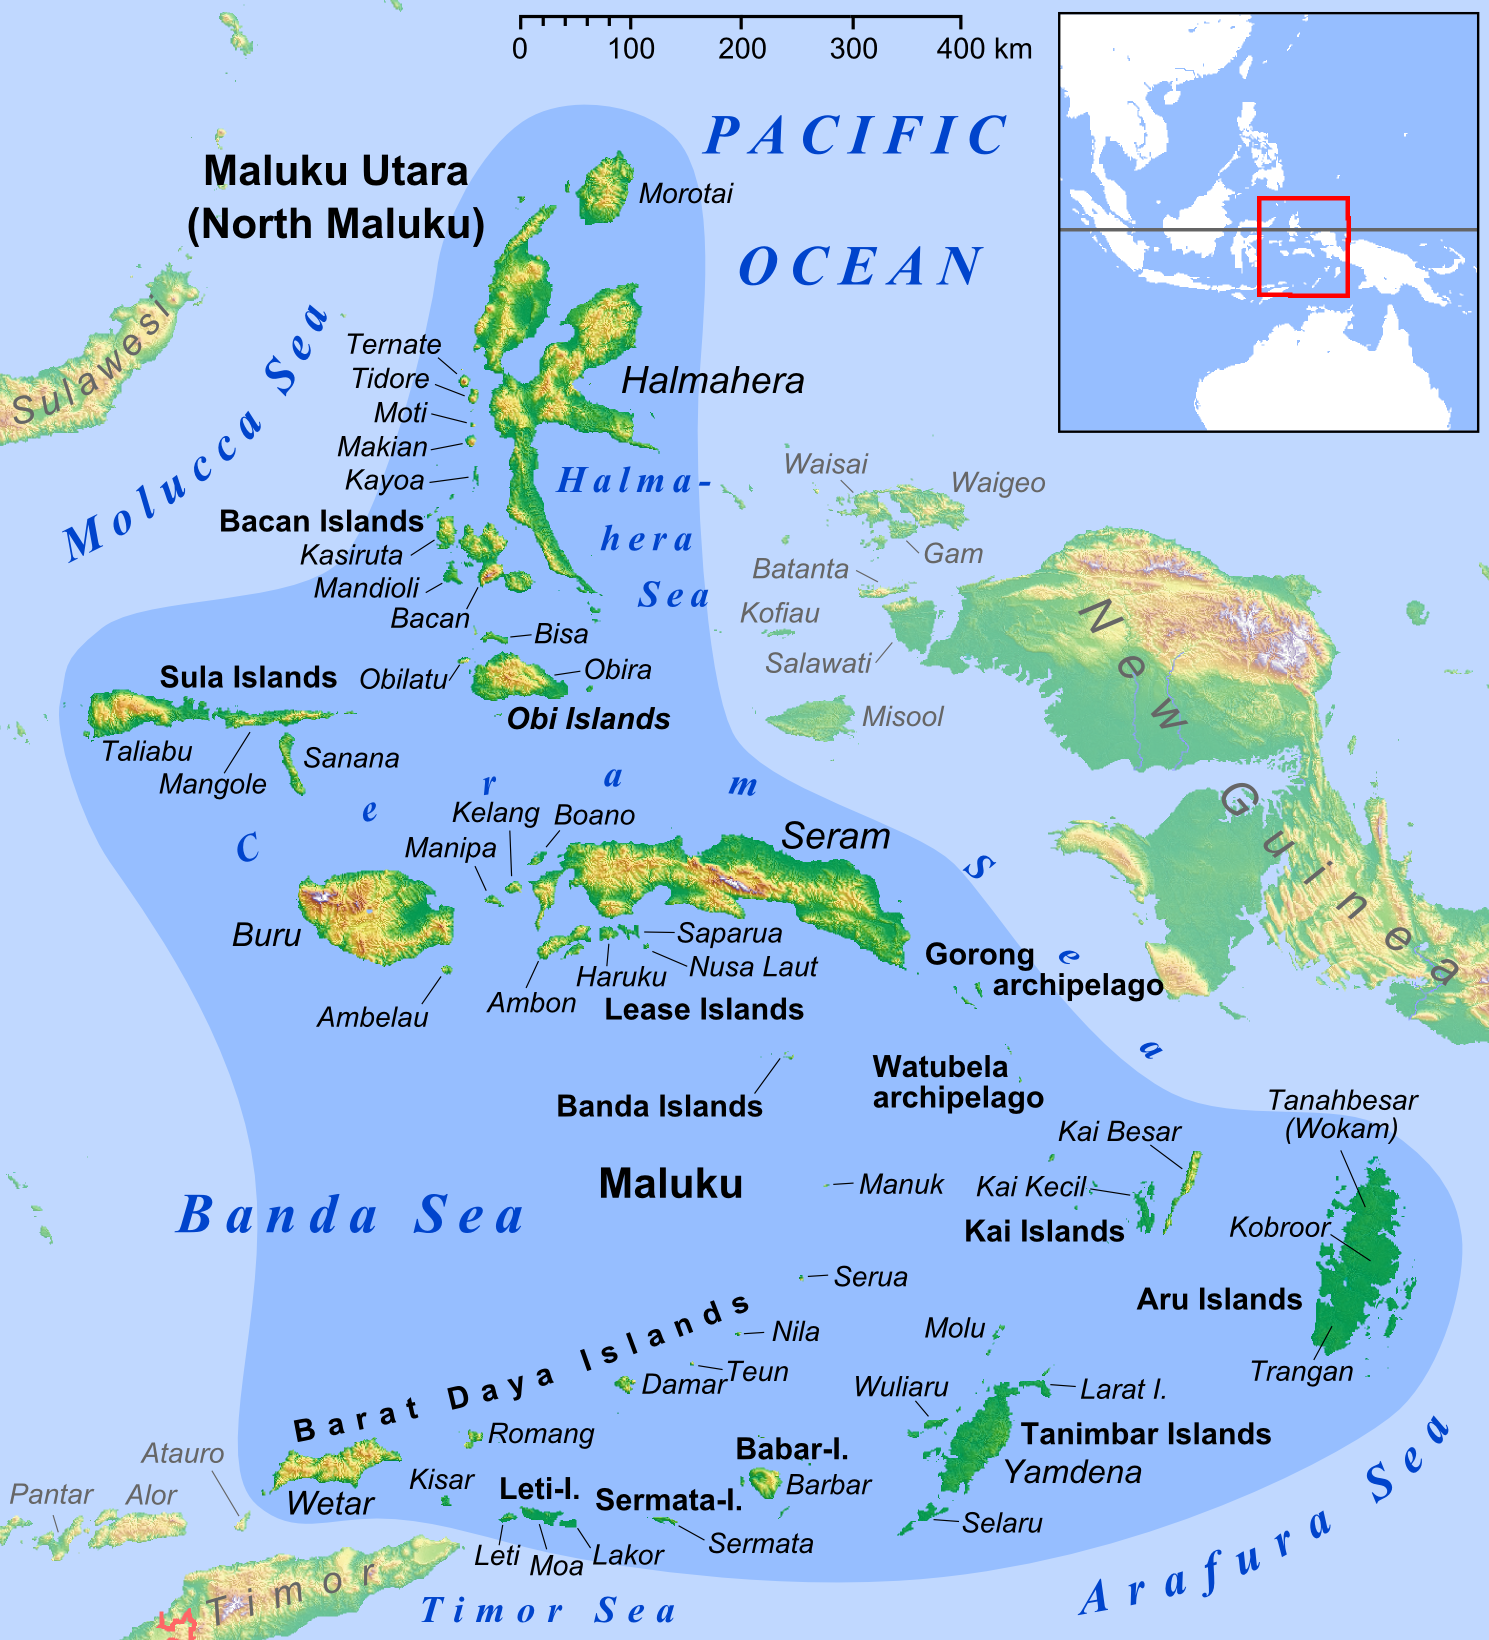 http://upload.wikimedia.org/wikipedia/commons/f/f5/Maluku_Islands_en.png